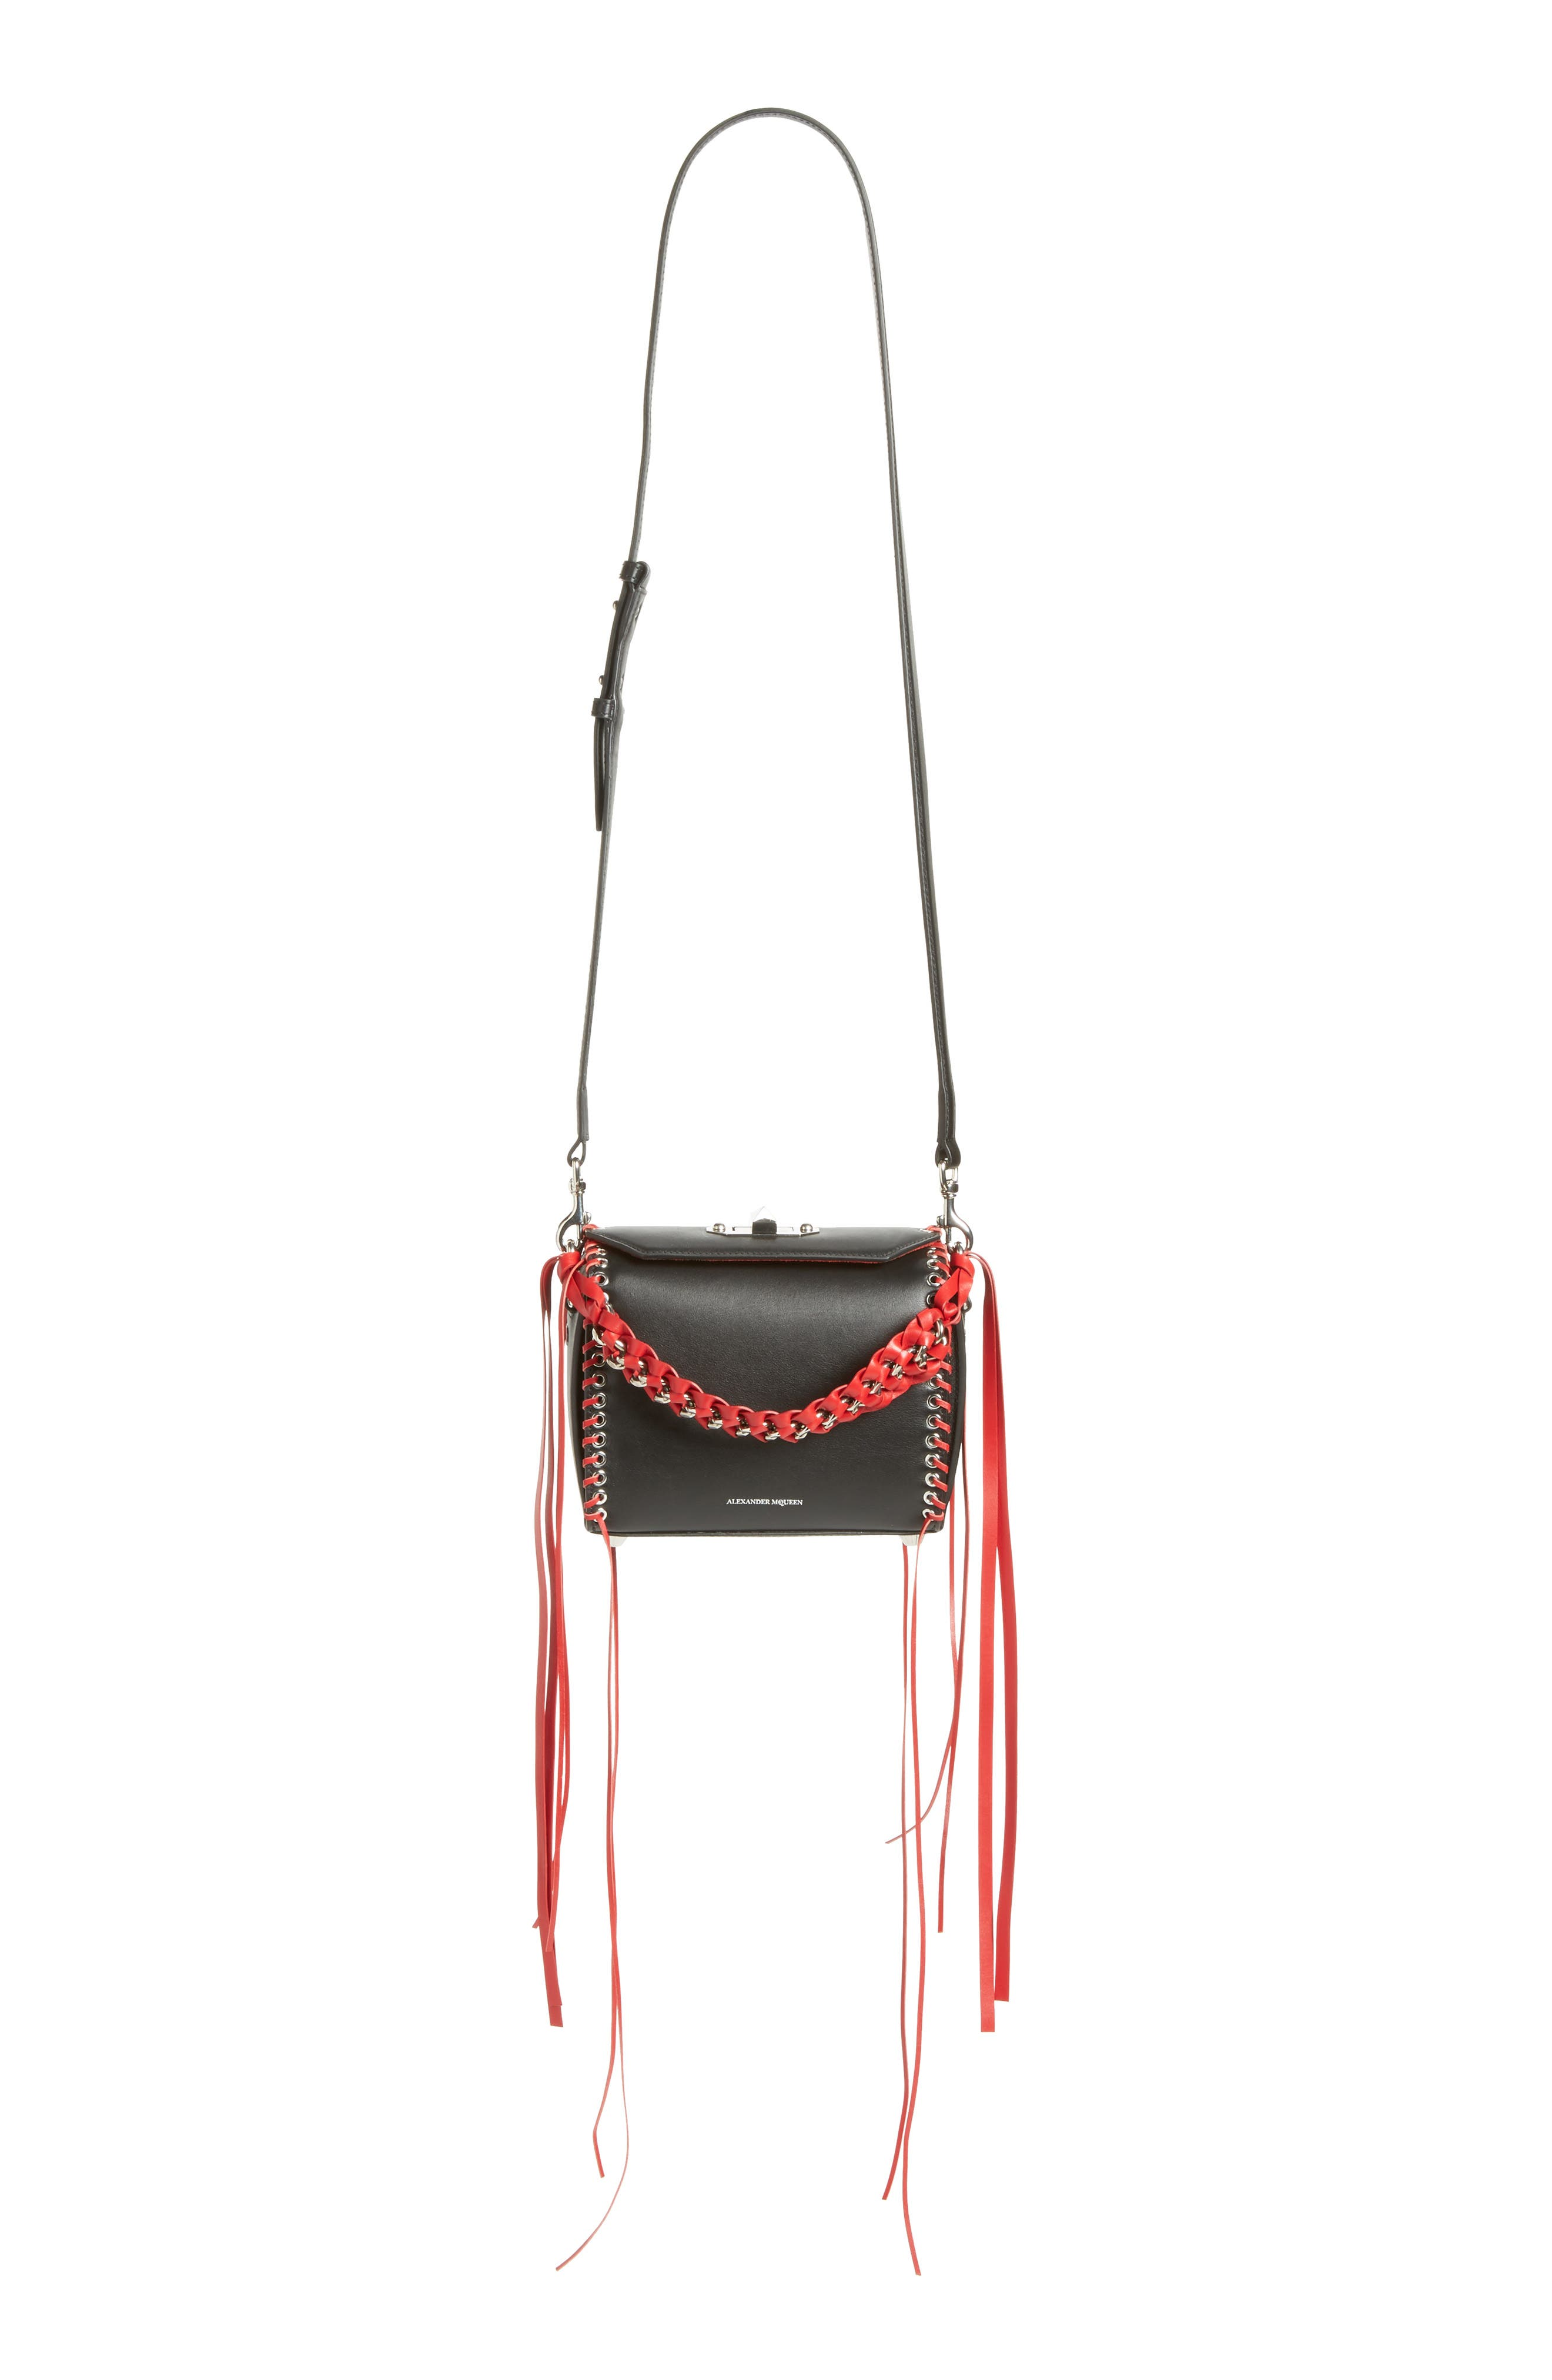 Box Bag 19 Calfskin Bag,                             Main thumbnail 1, color,                             Black/ Red